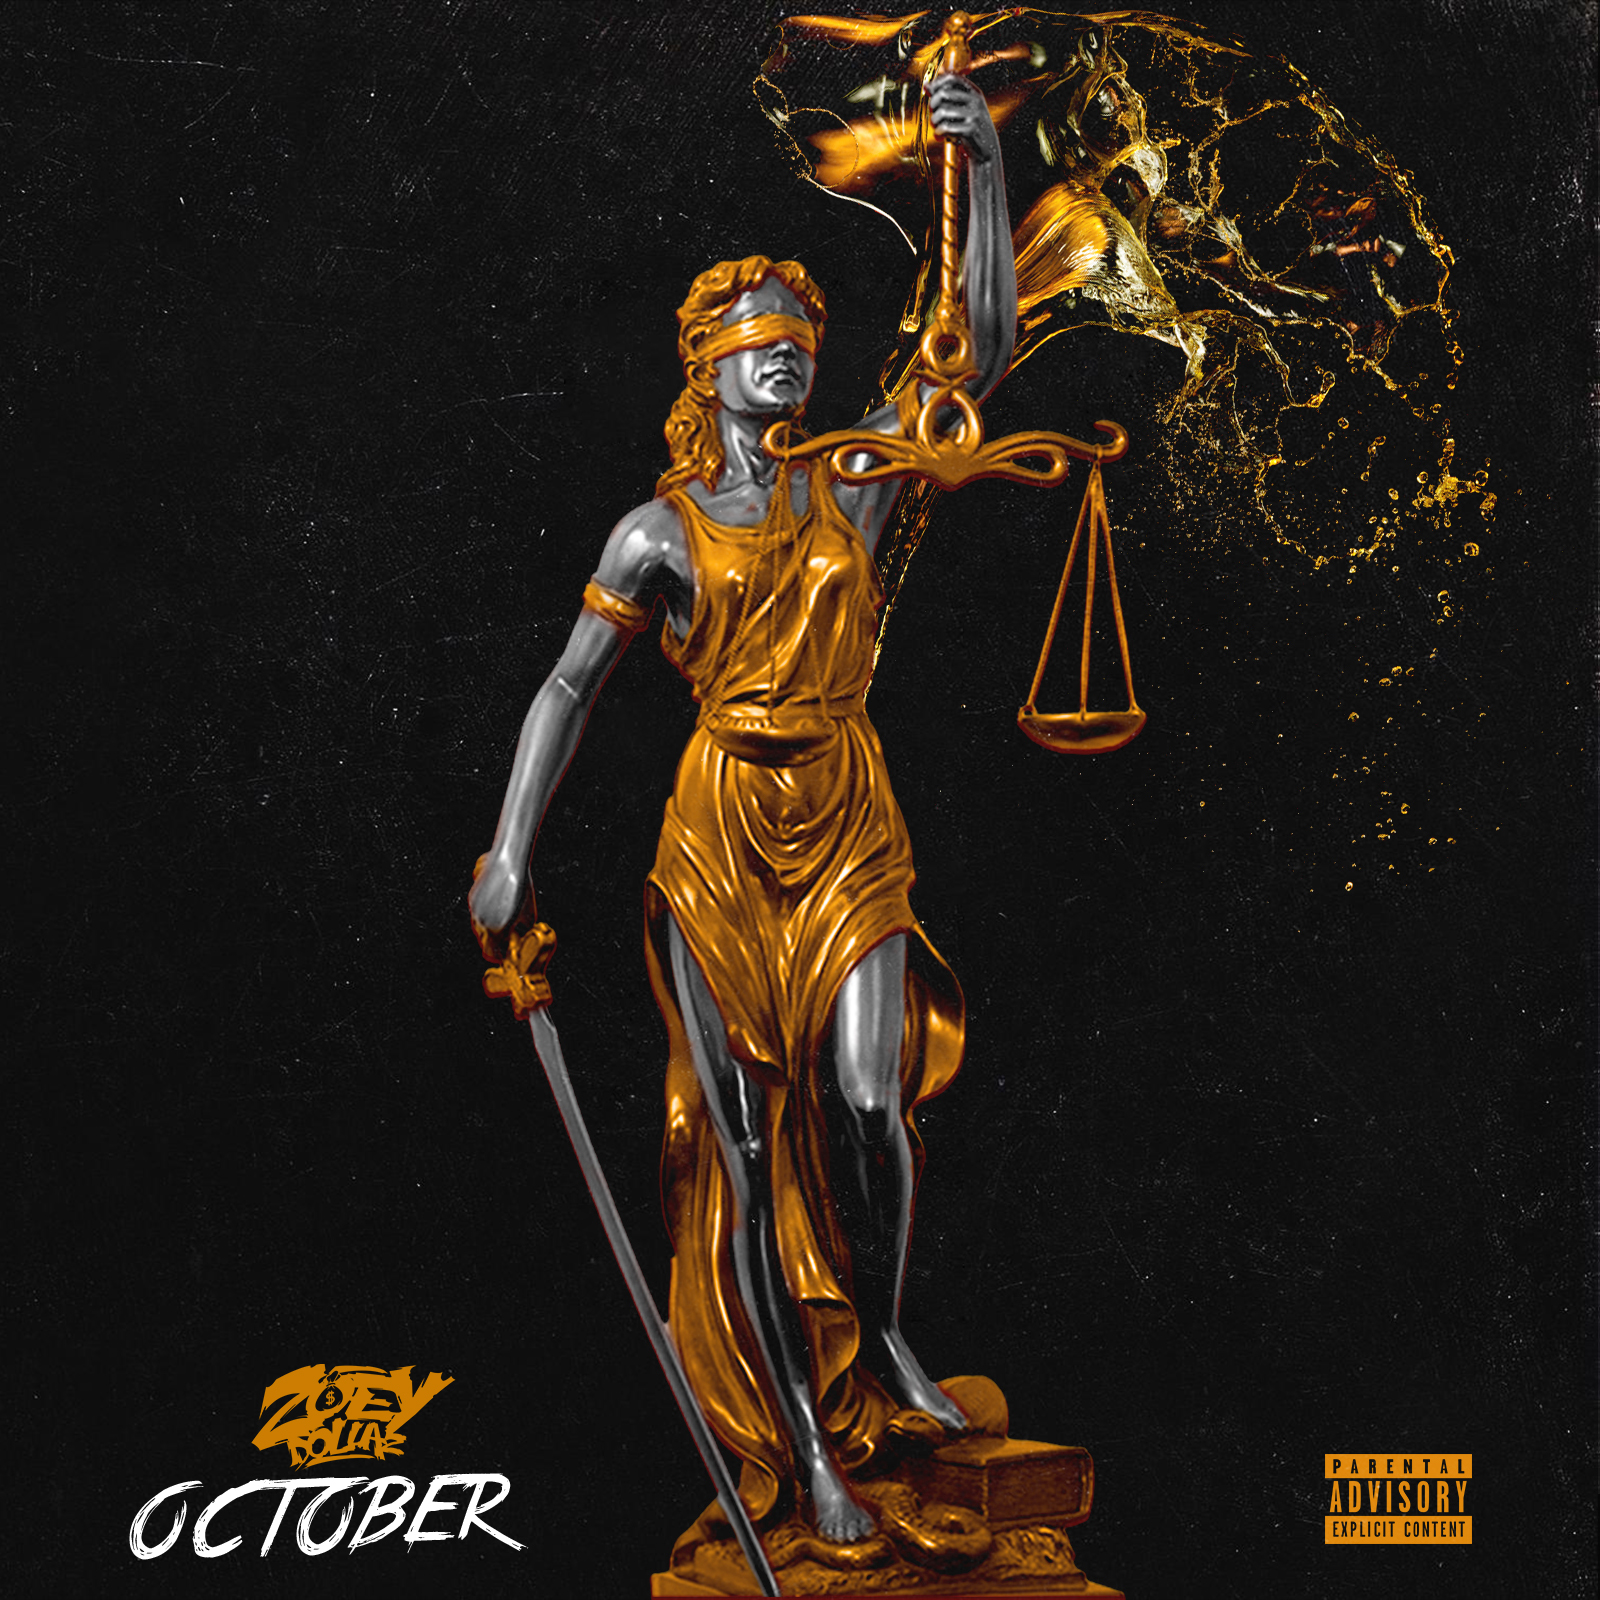 zoey-dollaz-october-mixtape